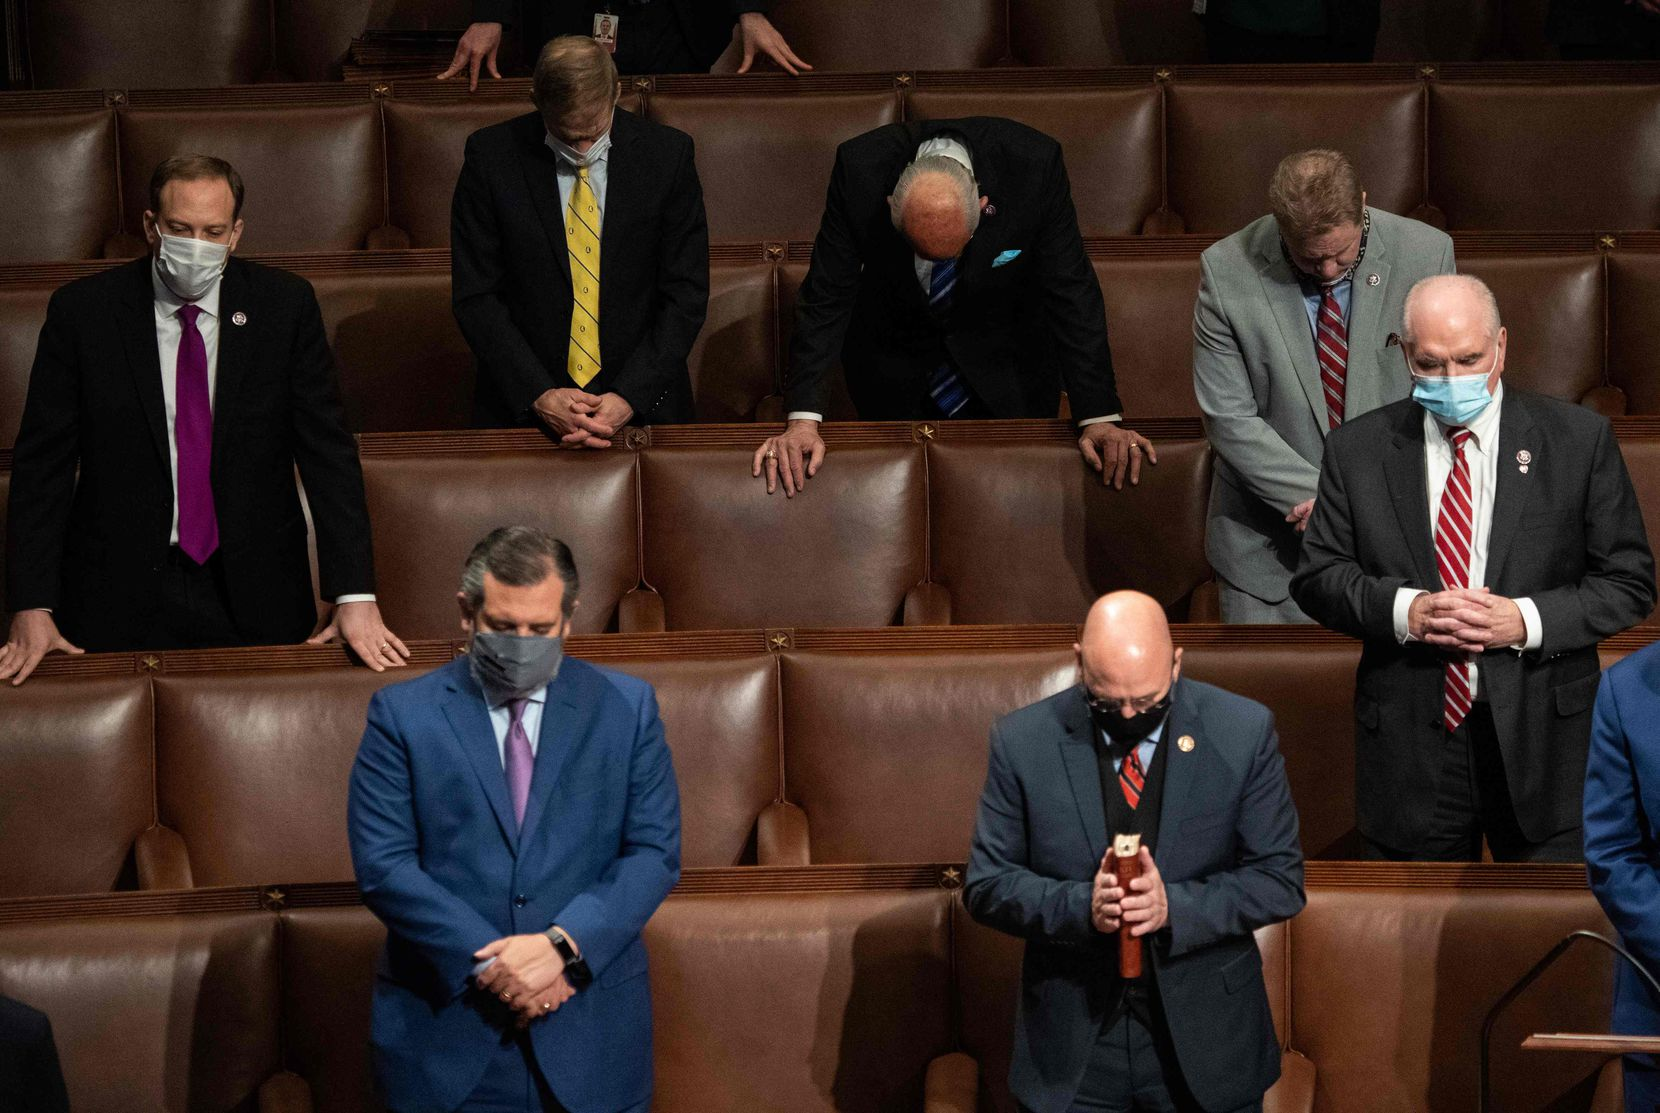 Sen. Ted Cruz and other members of Congress pray after Vice President Mike Pence declared the final electoral vote counts making Joe Biden the next president, early Jan. 7, 2021. Trump supporters interrupted the joint session of Congress when they stormed the Capitol.